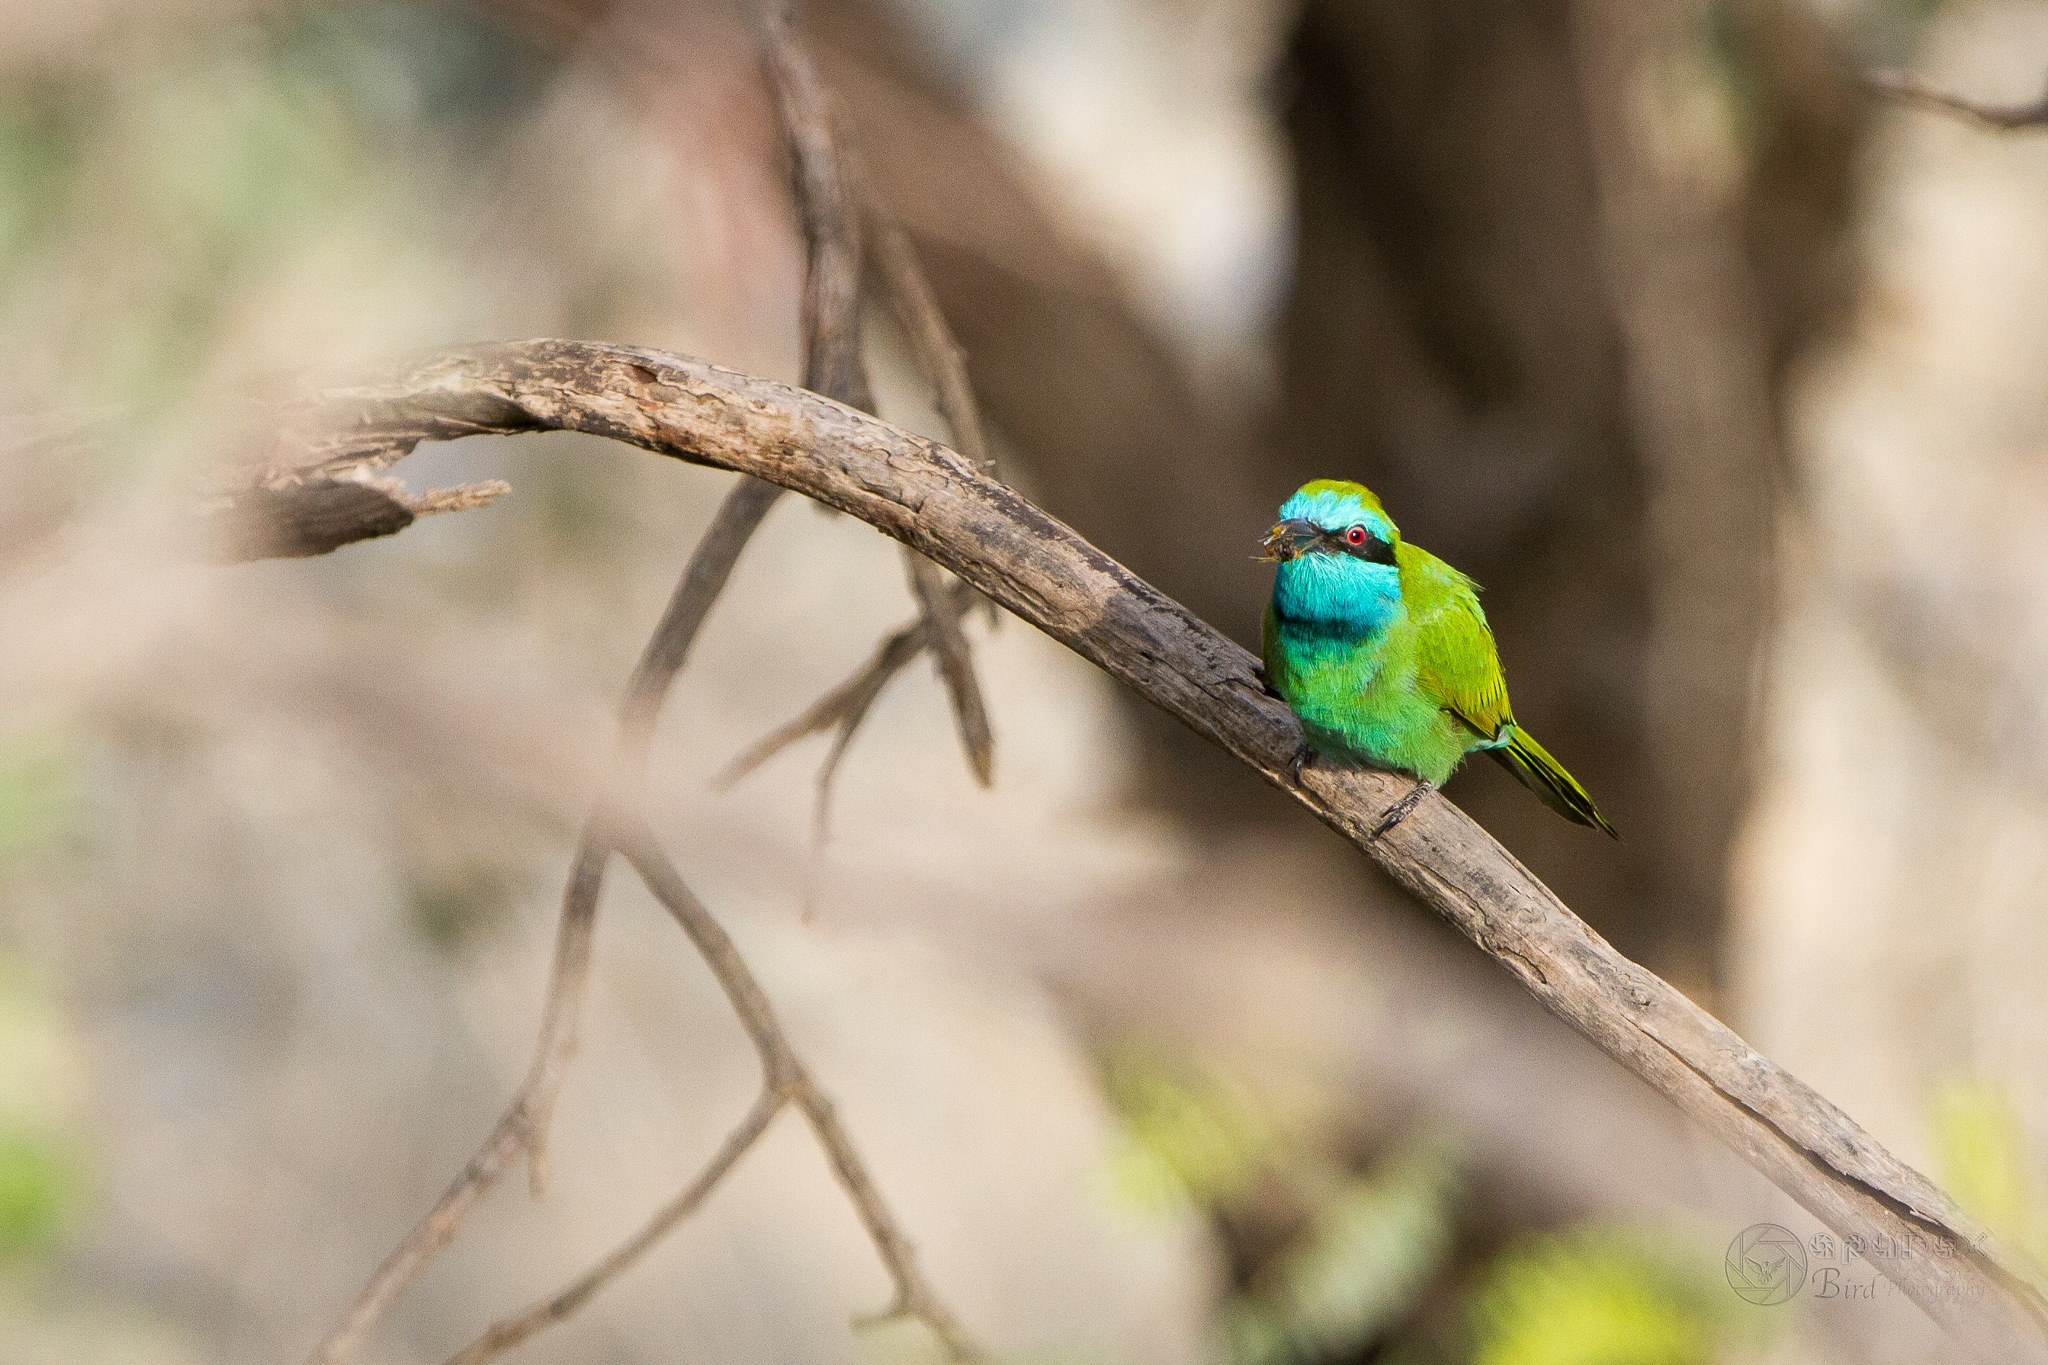 Blue-cheeked Bee-eater by Alvin Purificacion